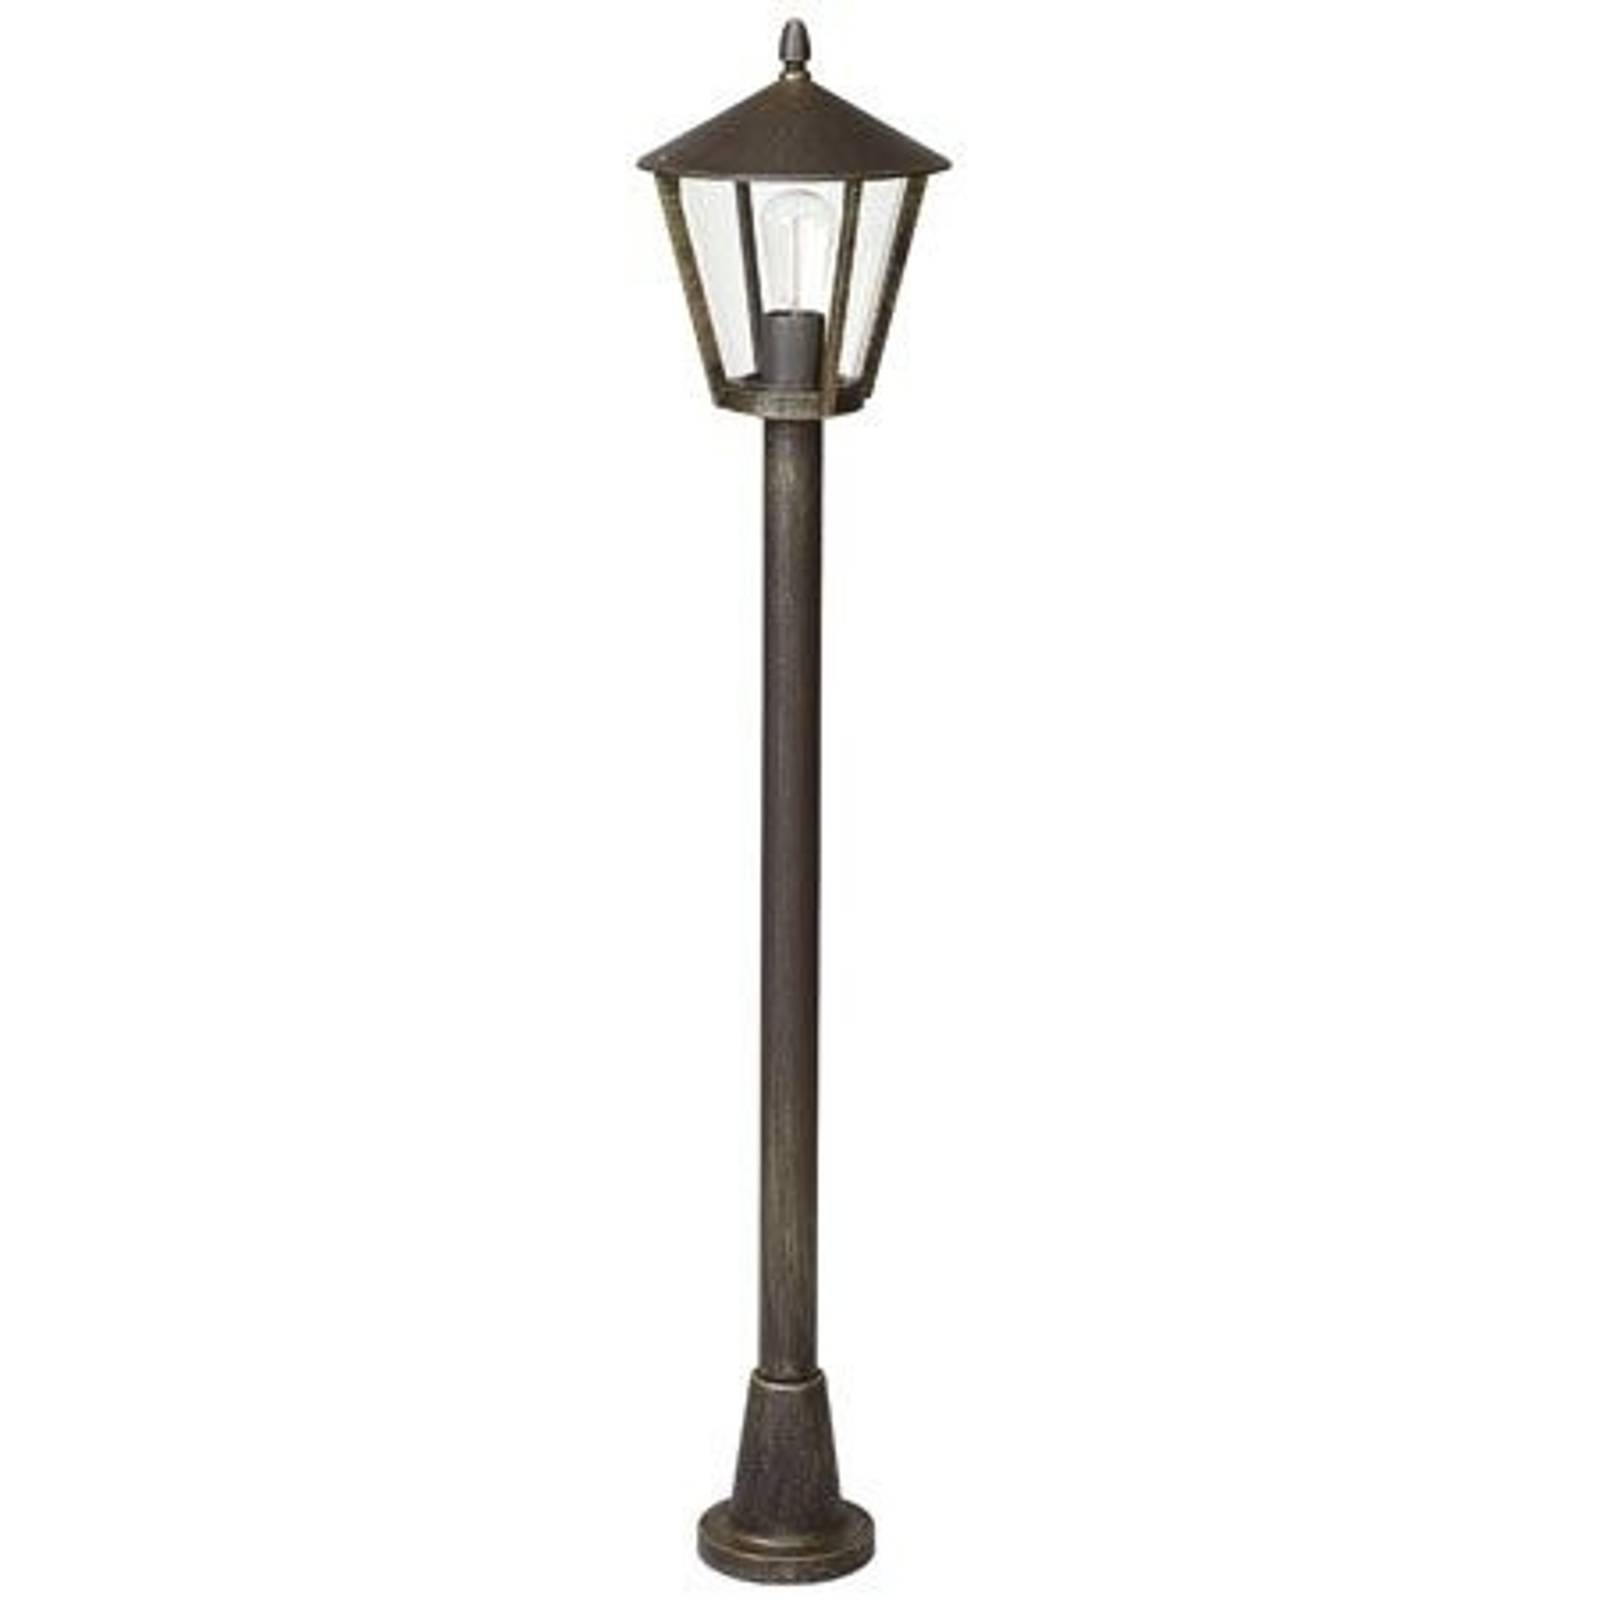 Country house post light 677, brown from Albert Leuchten